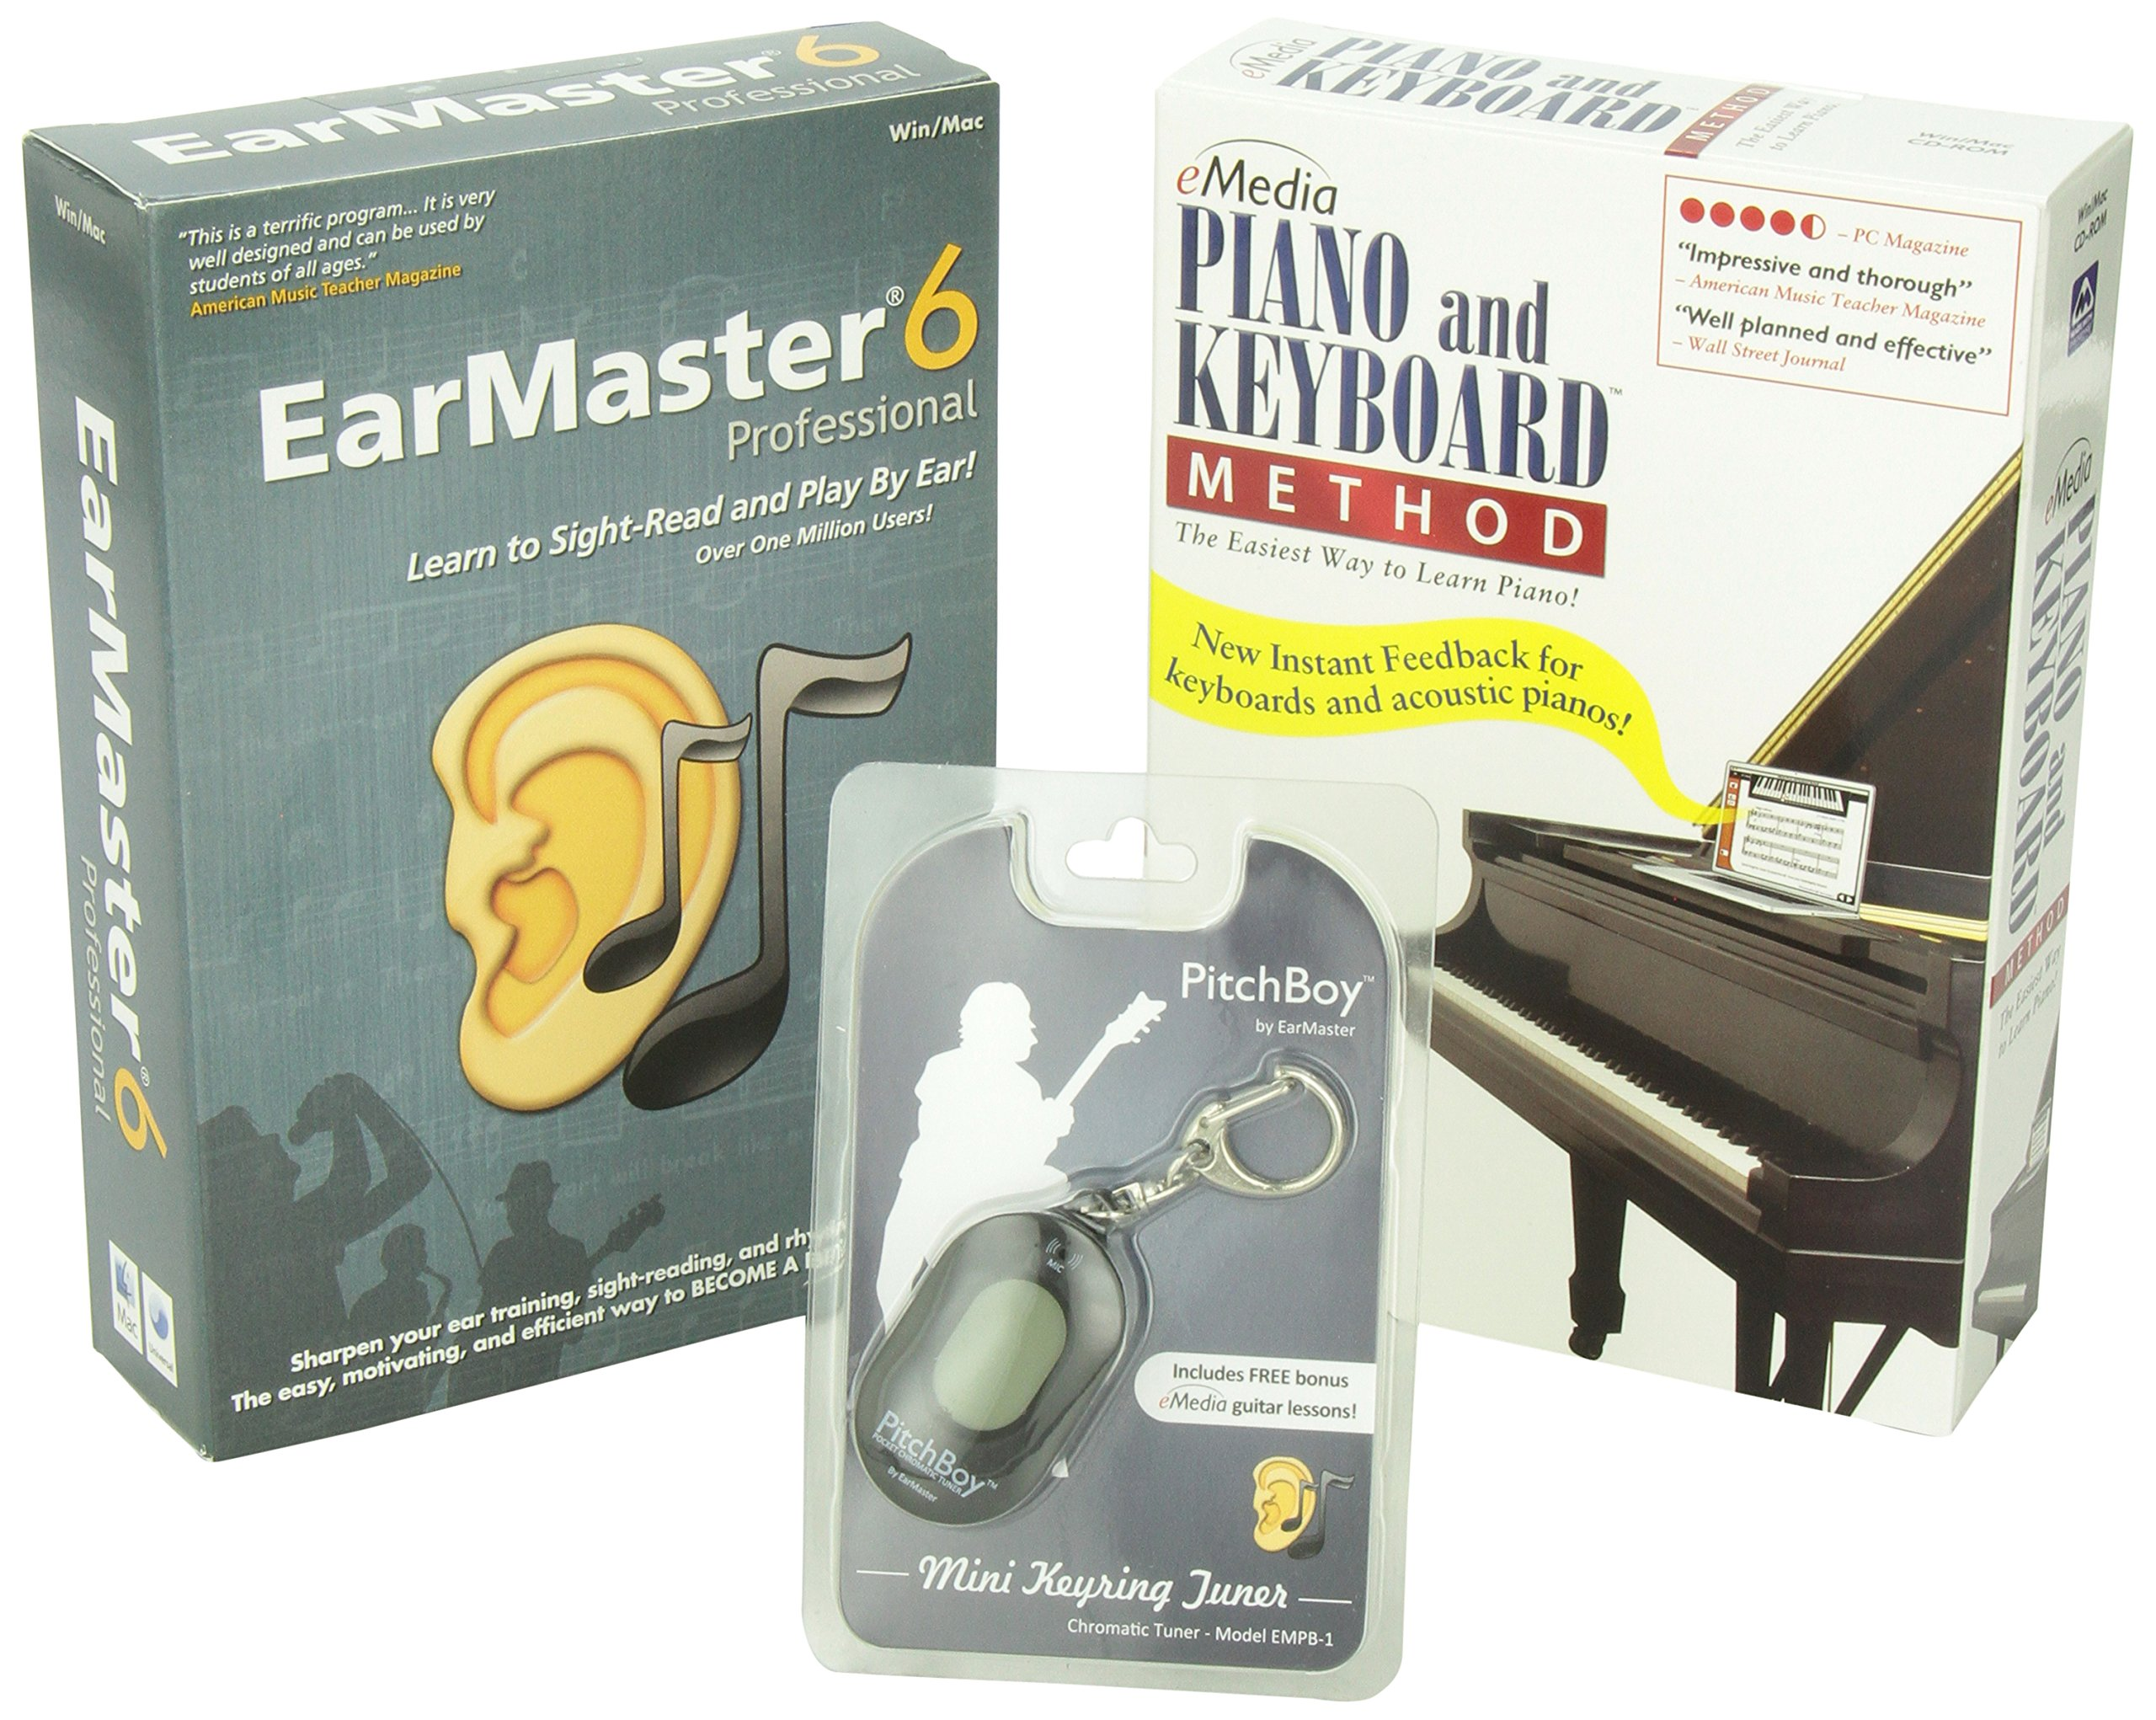 eMedia Piano and Keyboard Method, EarMaster 6 Pro, Pitchboy Chromatic Keychain Tuner (bundle) by eMedia